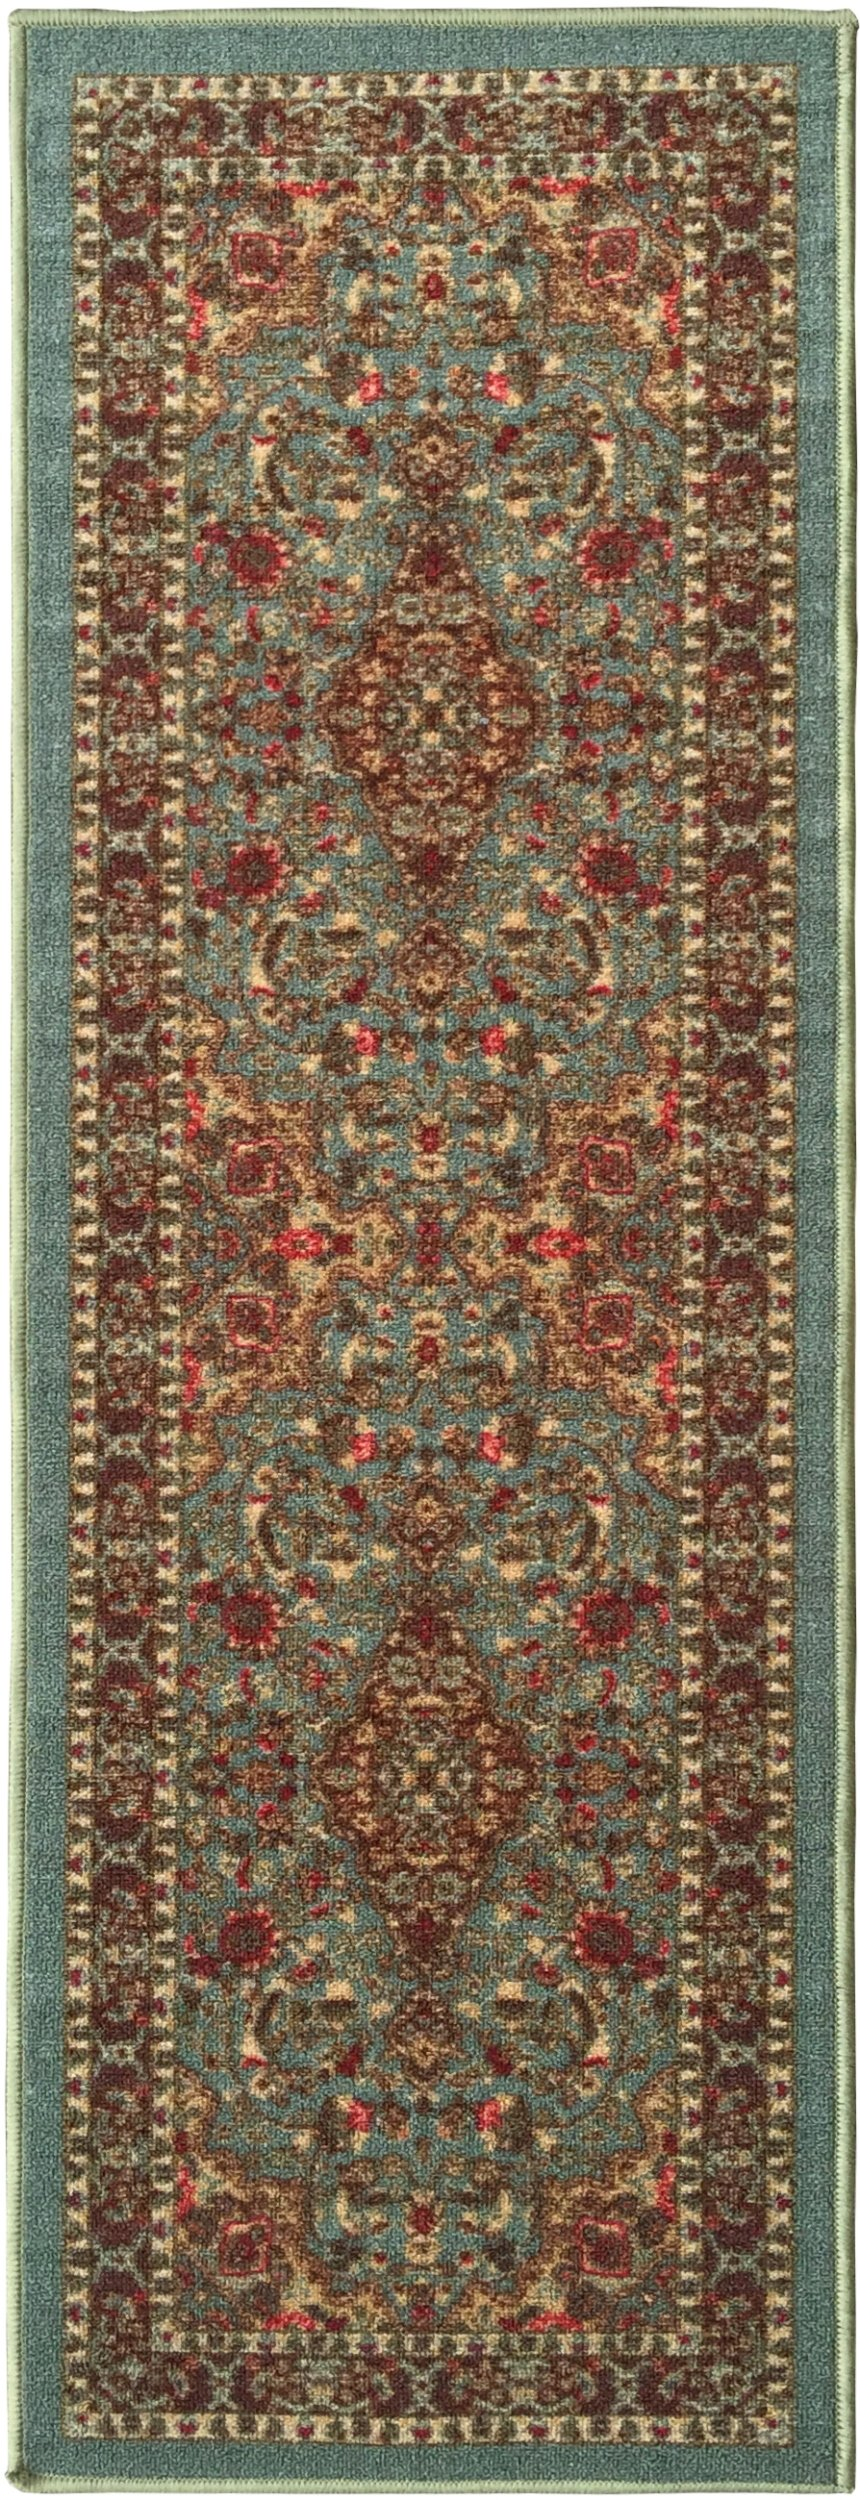 Ottomanson Ottohome Persian Heriz Oriental Design Runner Rug with Non-Skid Rubber Backing Area Rug, 20'' L x 59'' W, Sage Green/Aqua Blue